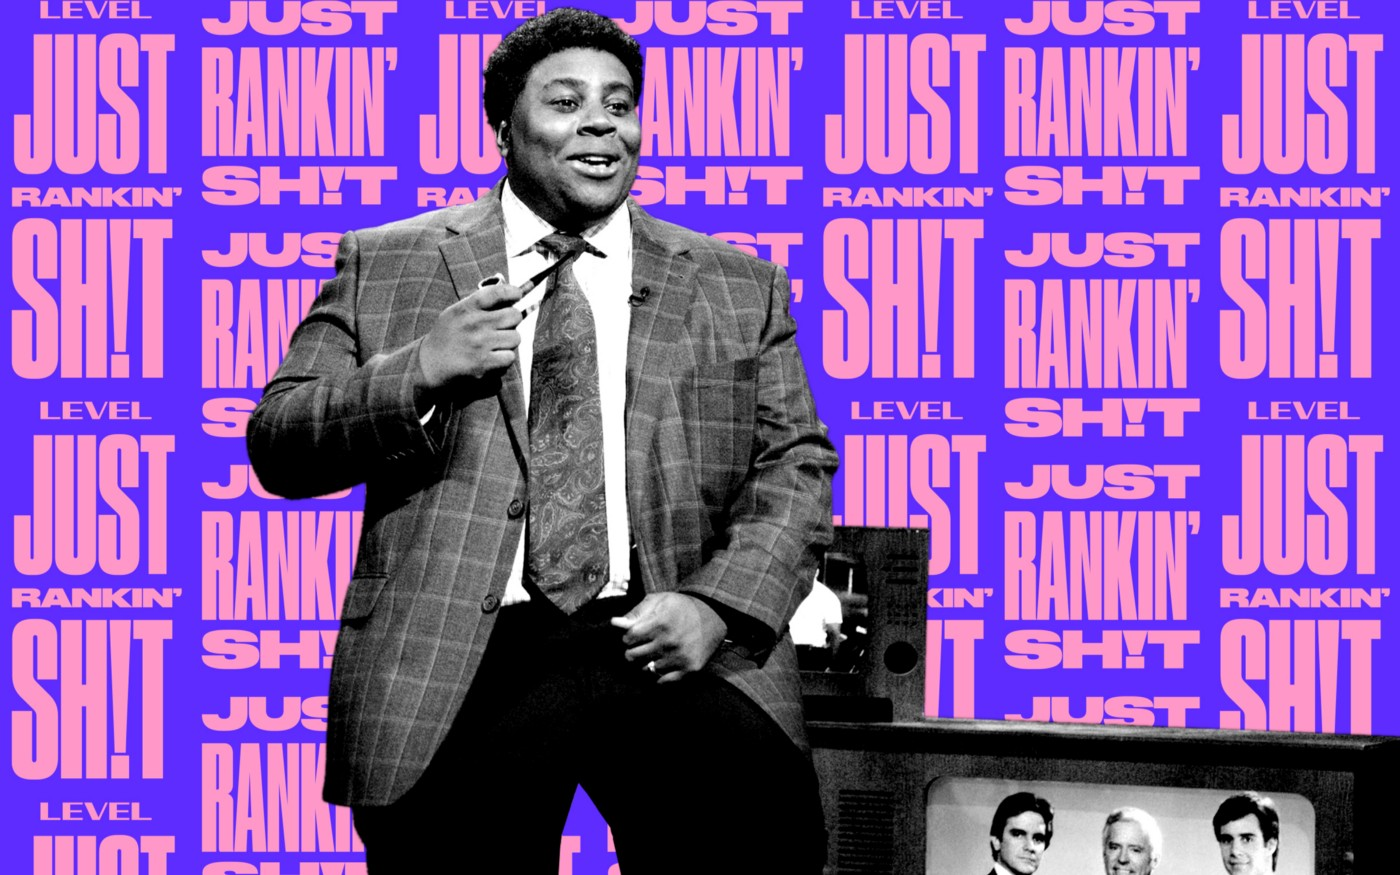 """SNL cast member Kenan Thompson performing with the text """"Just Rankin' Shit"""" behind him in the background."""